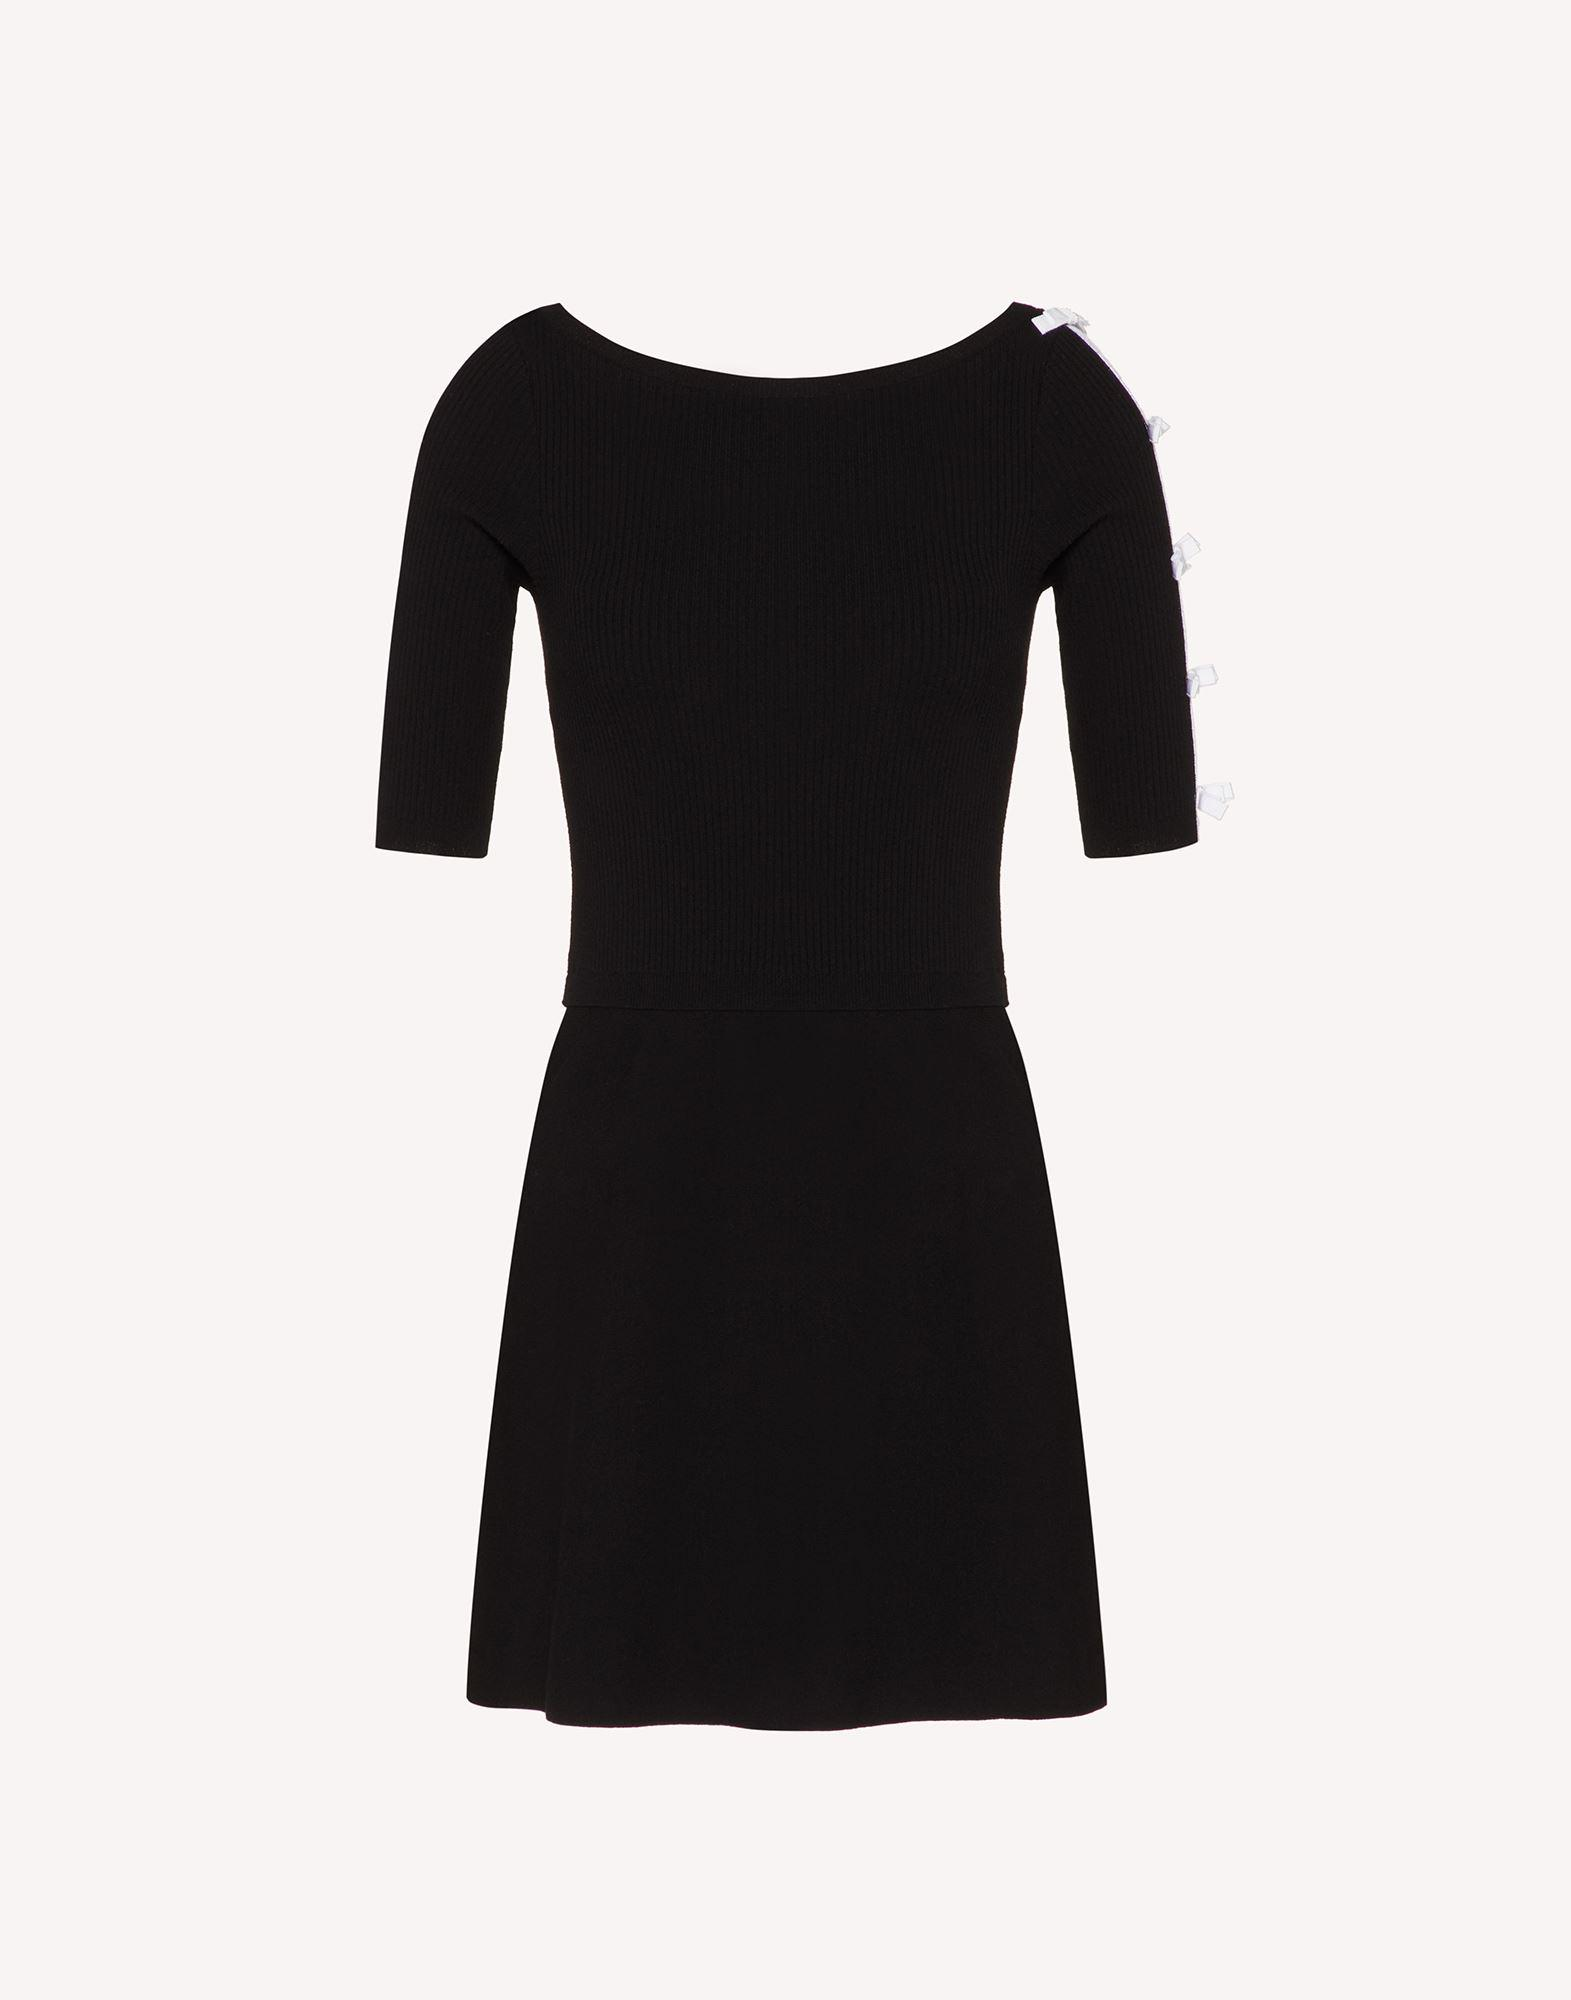 STRETCH VISCOSE KNIT DRESS WITH BOW DETAILS 3